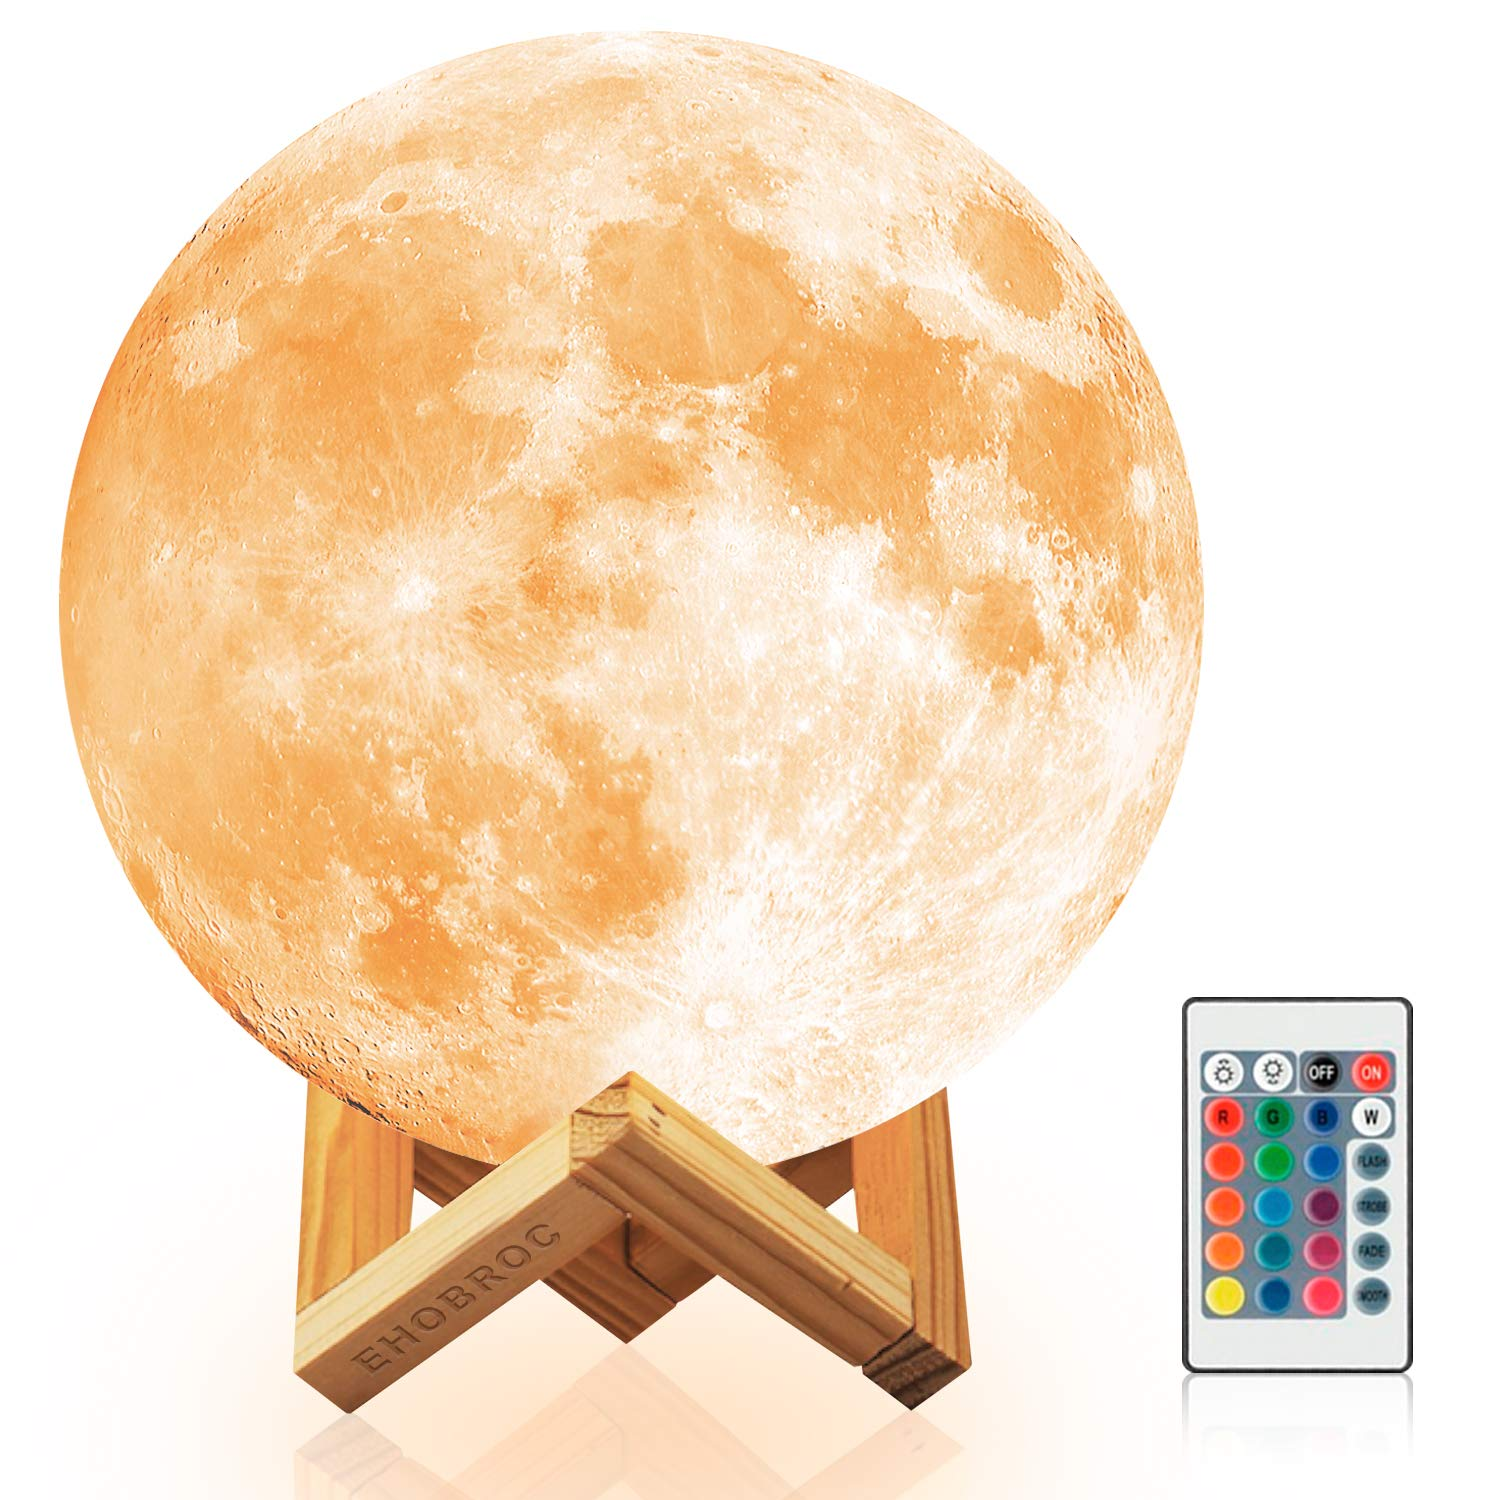 Ehobroc Moon Lamp, 3D Printing Moon Globe Light 5.9 Inch Glowing Moon Lamp Tap Change 3 Colors (Cool/Warm White and Yellow), Decor Moon Light for Kids, Birthday, Bedside 001-A